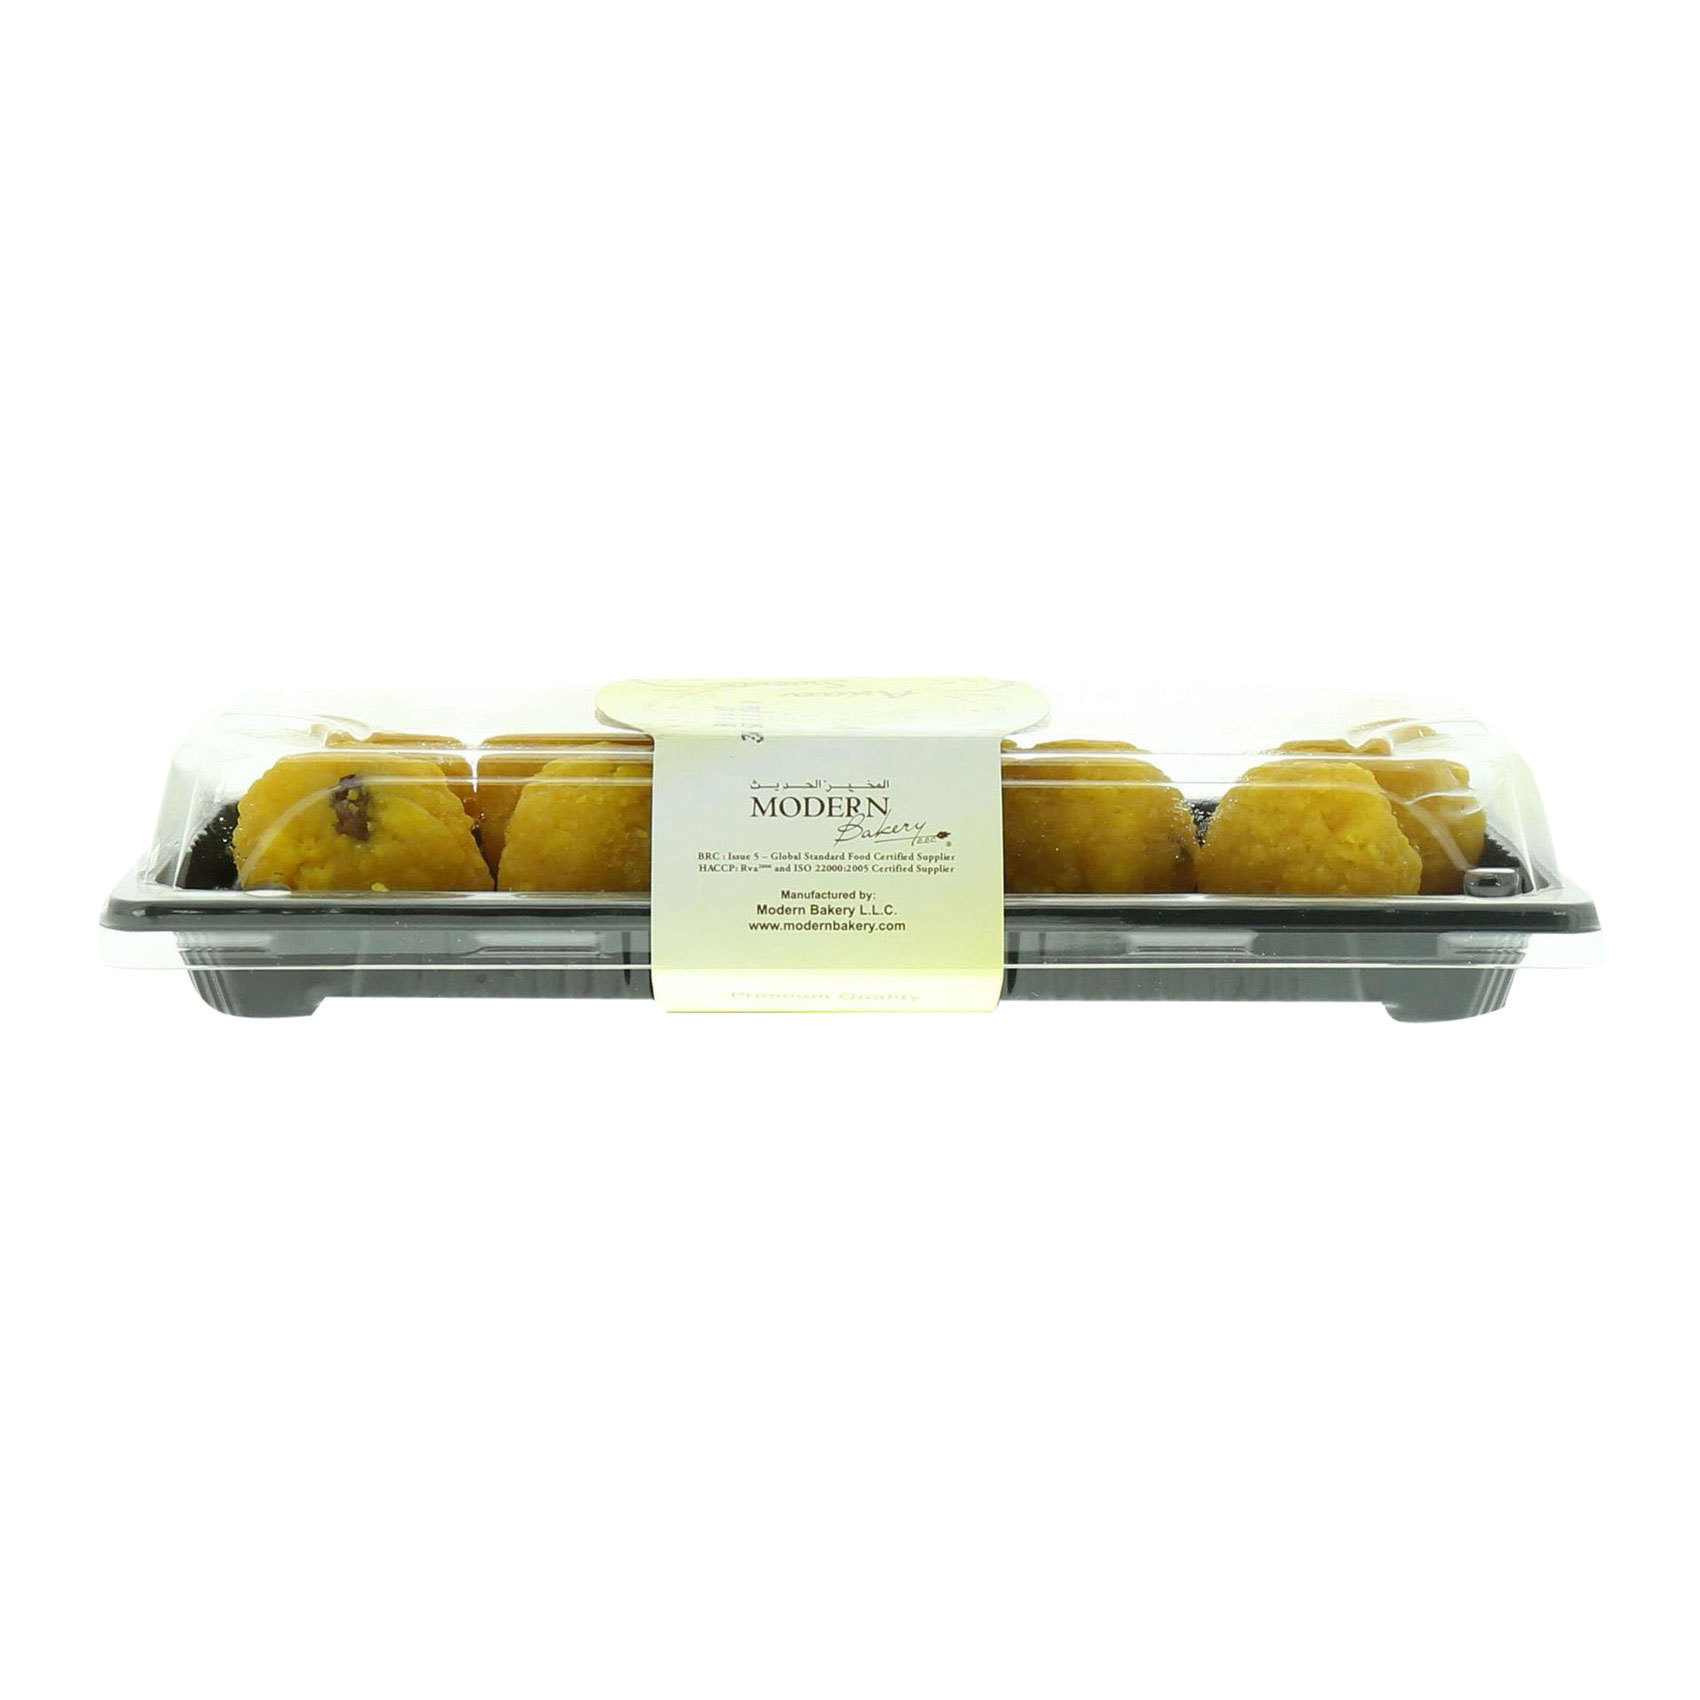 M/BAKERY SWEET BOONDI LADDU 255G